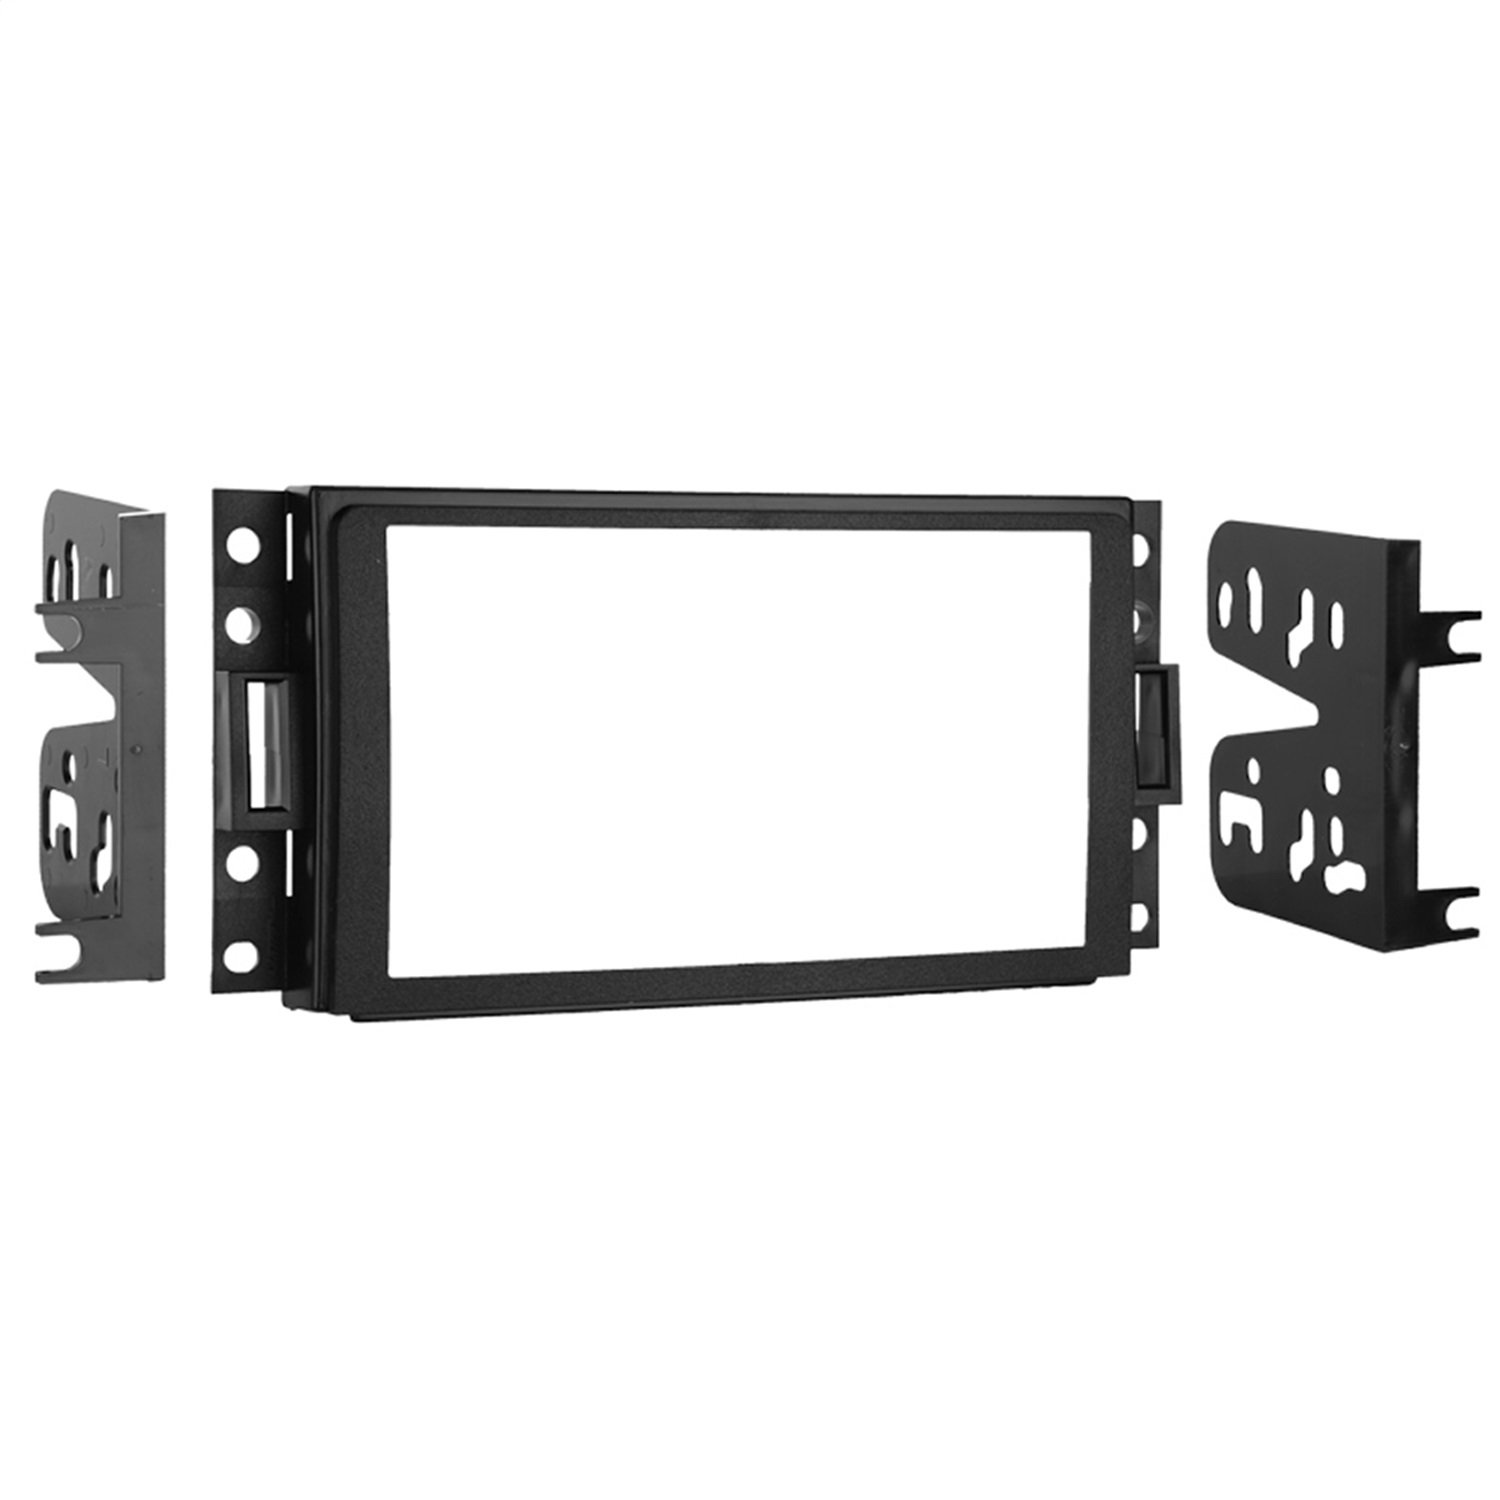 Metra 95-3304 Double DIN Installation Kit for Select 2005-2006 GM/Chevrolet Vehicles (Black) METRA Ltd